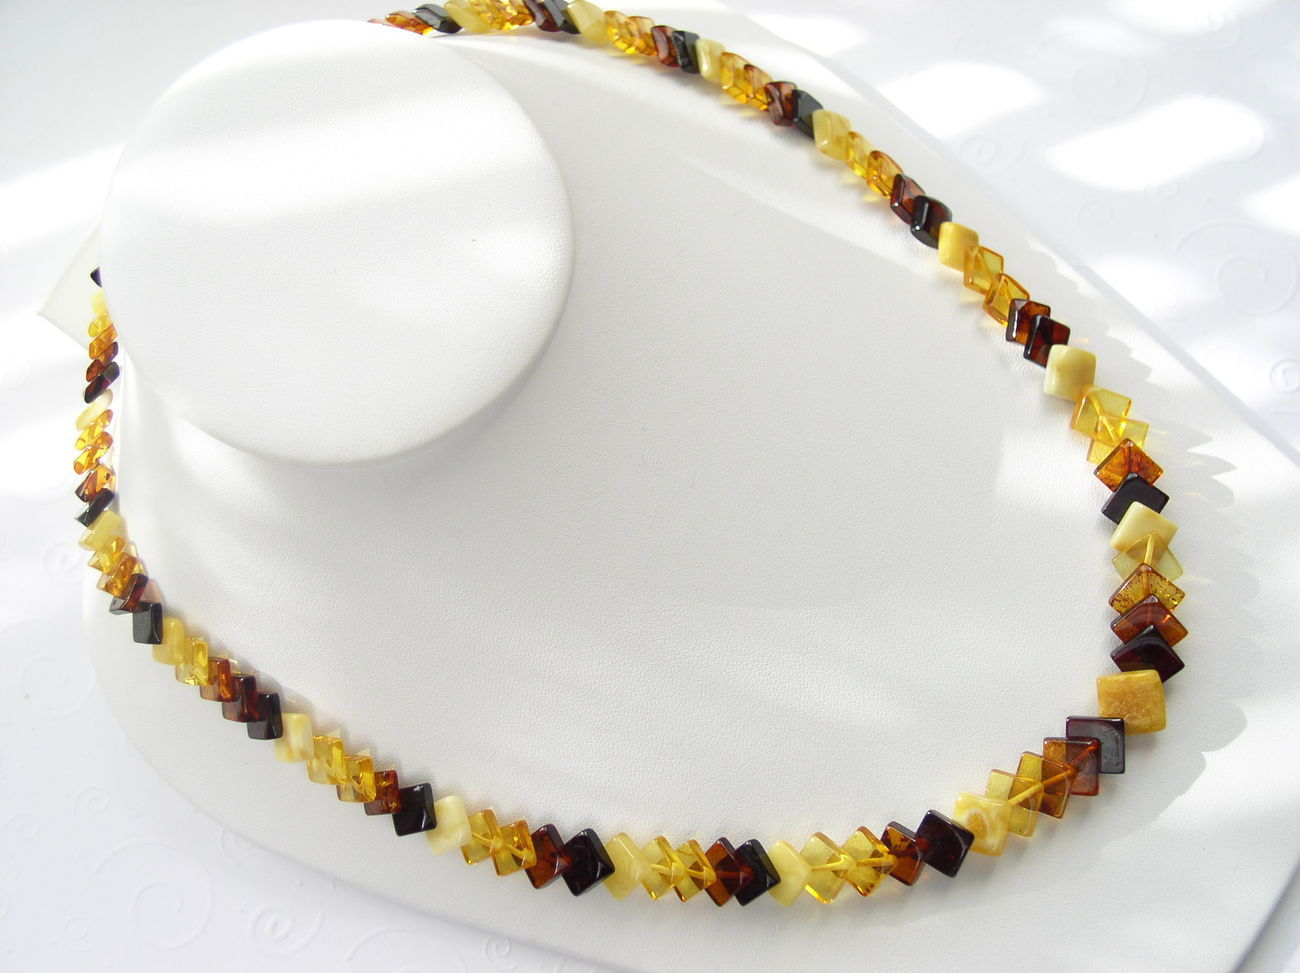 Gorgeous Natural Baltic Amber Diamond Cut Beads Necklace